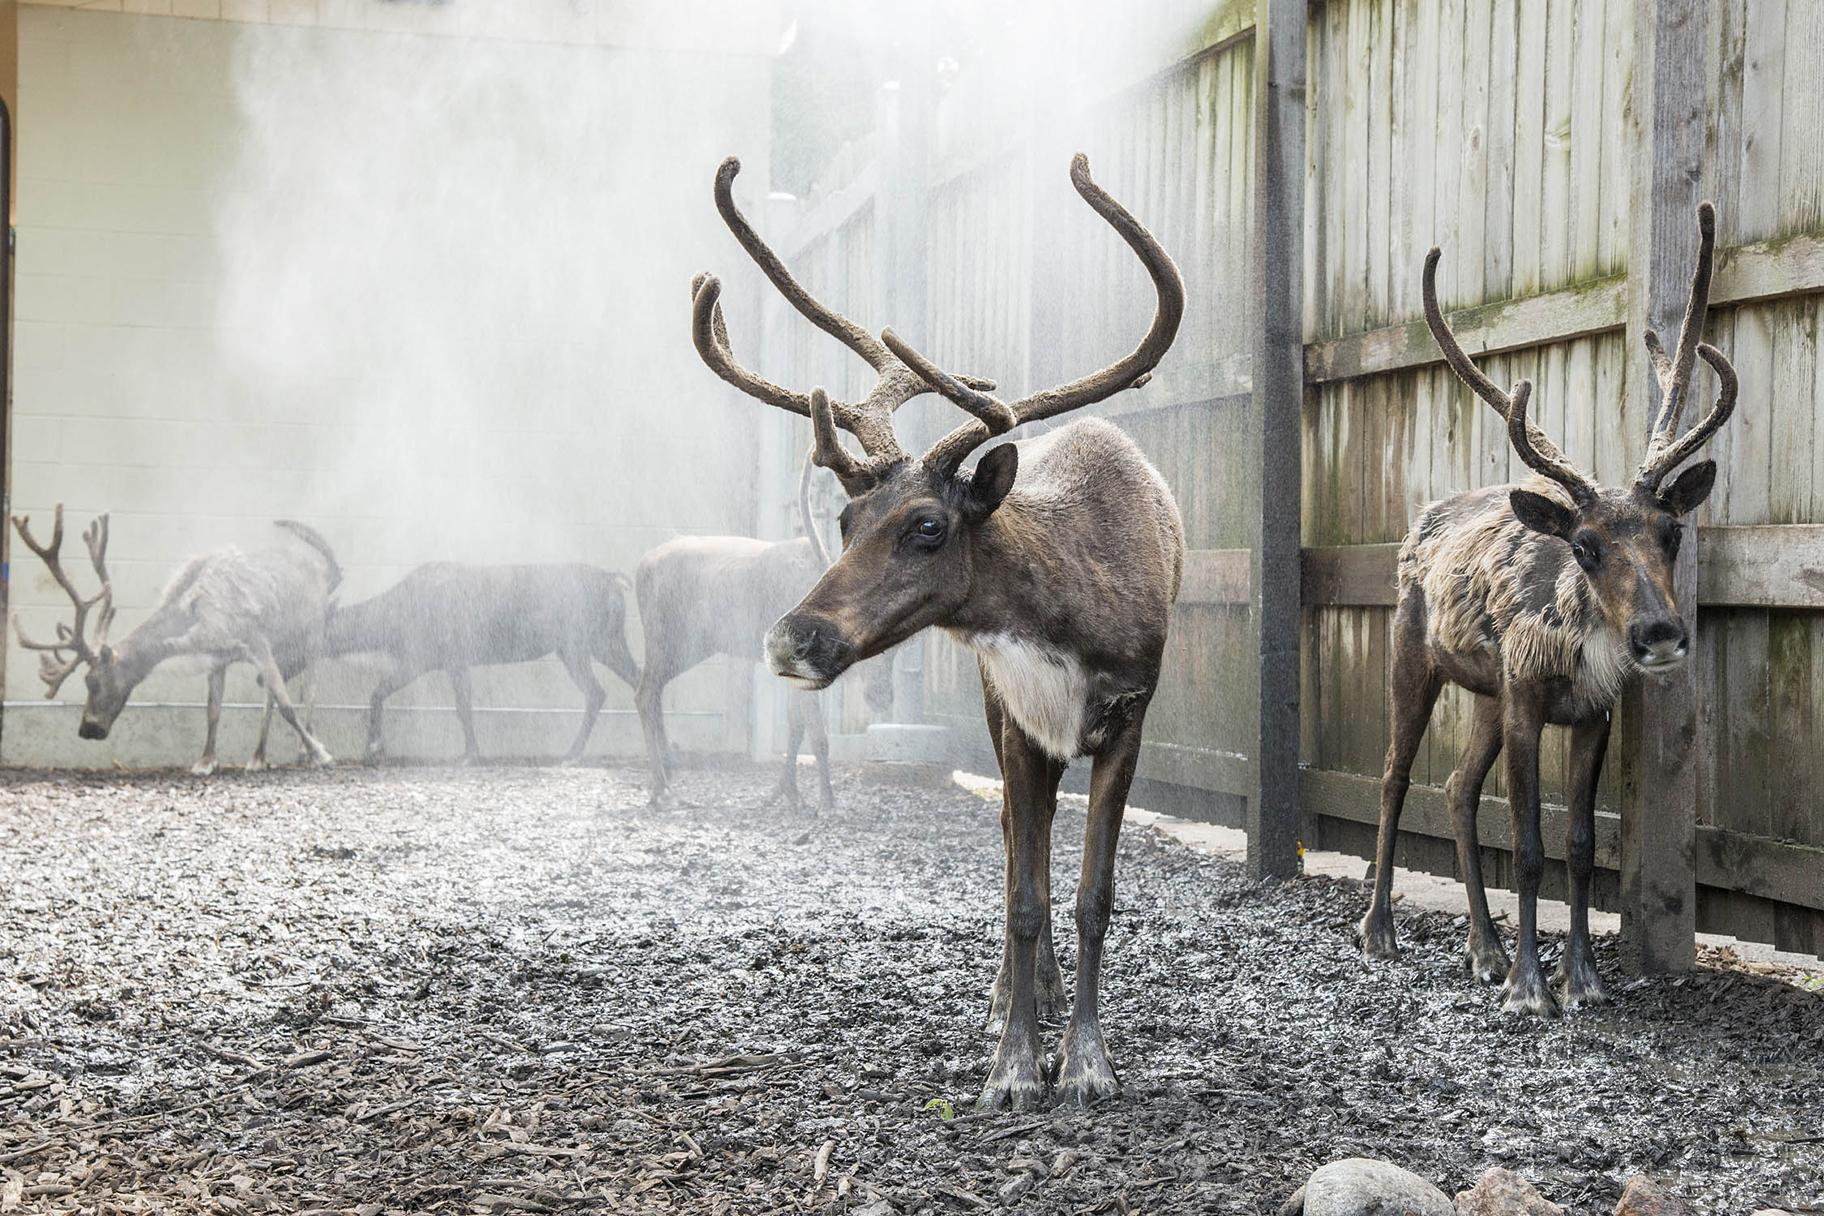 Reindeer at Brookfield Zoo keep cool by standing near misters set up by animal care staff in the reindeer habitat. (Kelly Tone / Chicago Zoological Society)